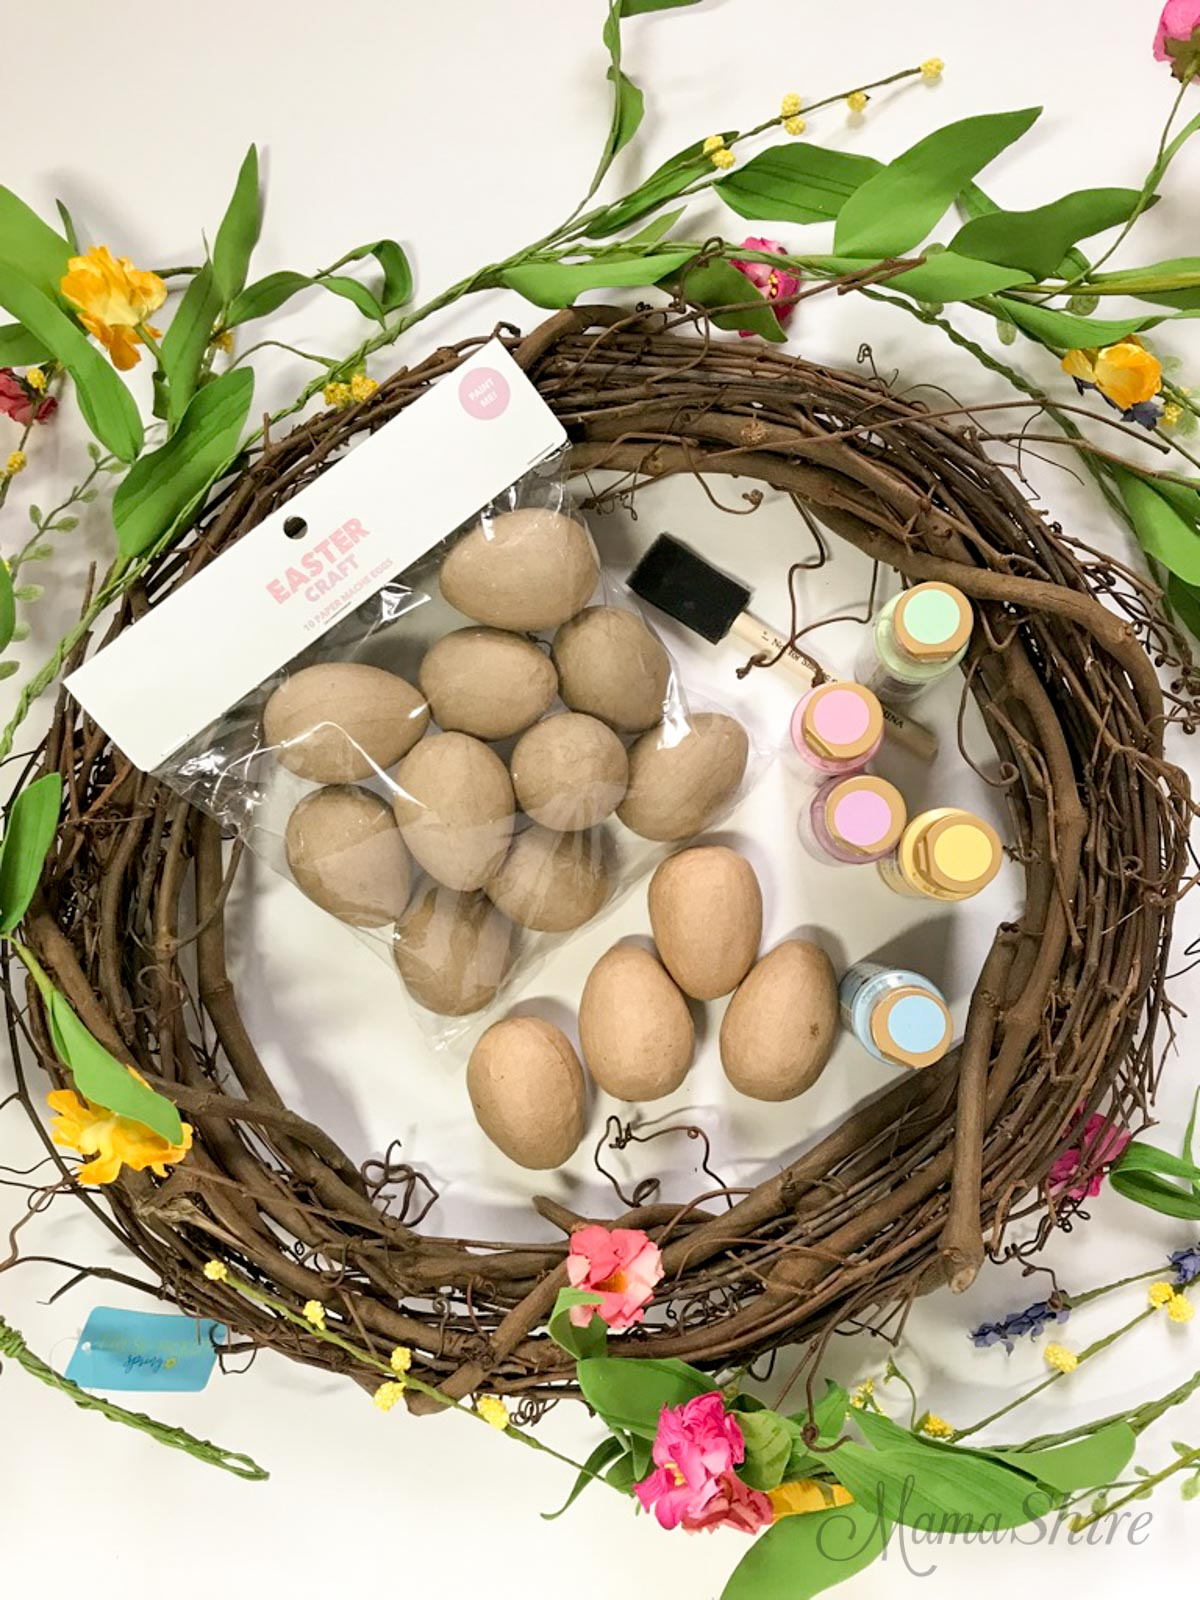 Supplies to make an Easy Easter Egg Wreath. Grapevine wreath, paint, eggs, flowers.